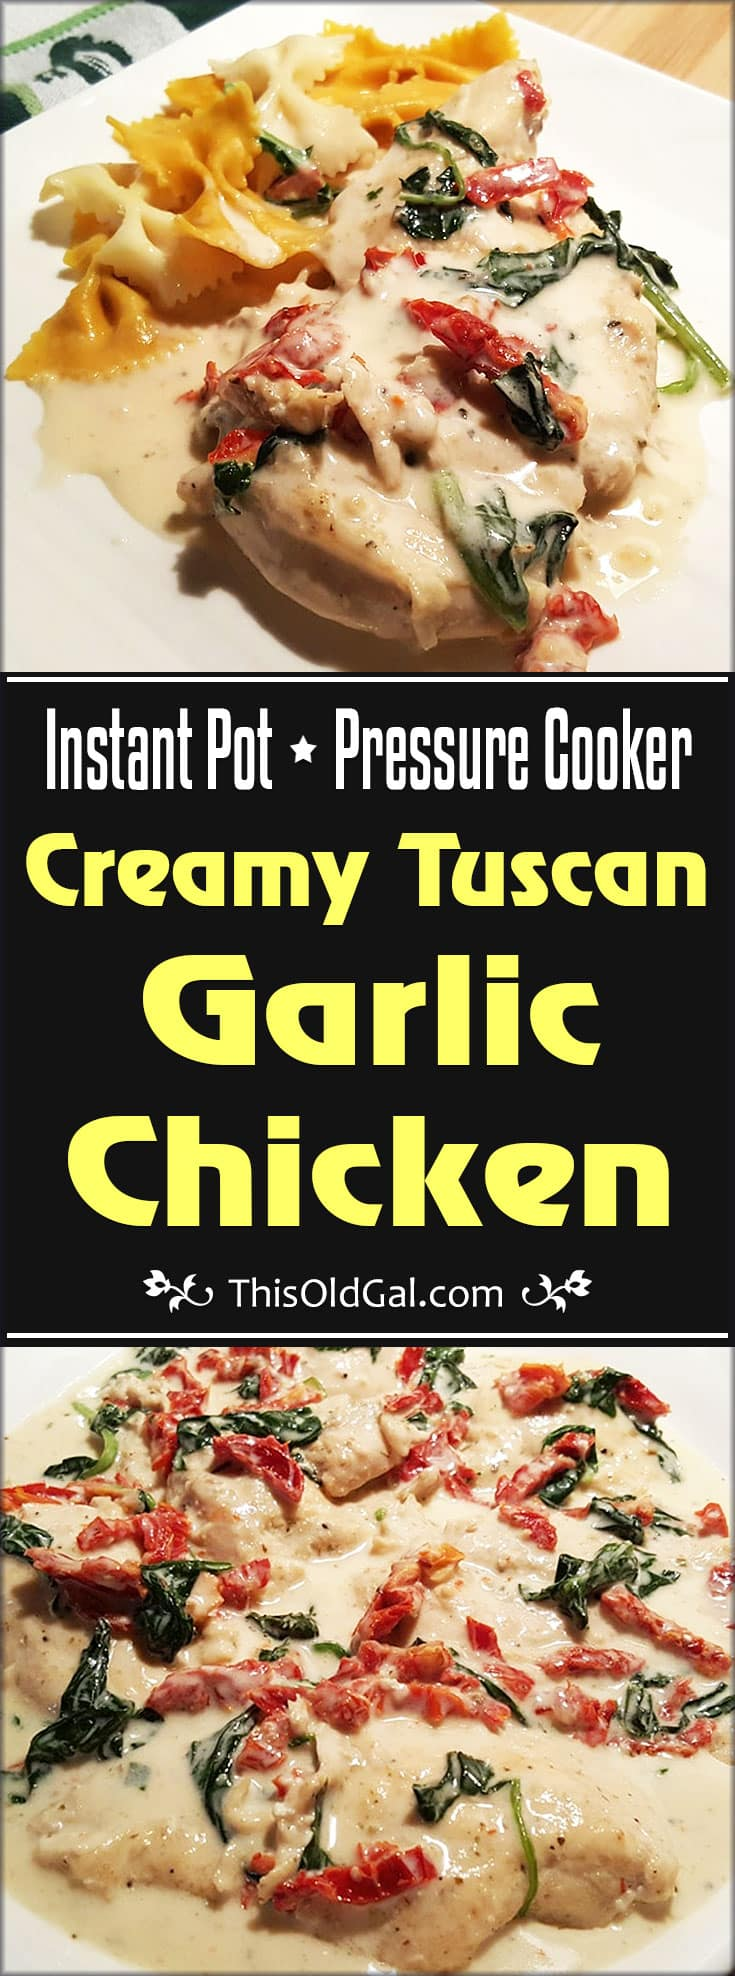 Pressure Cooker Creamy Tuscan Garlic Chicken